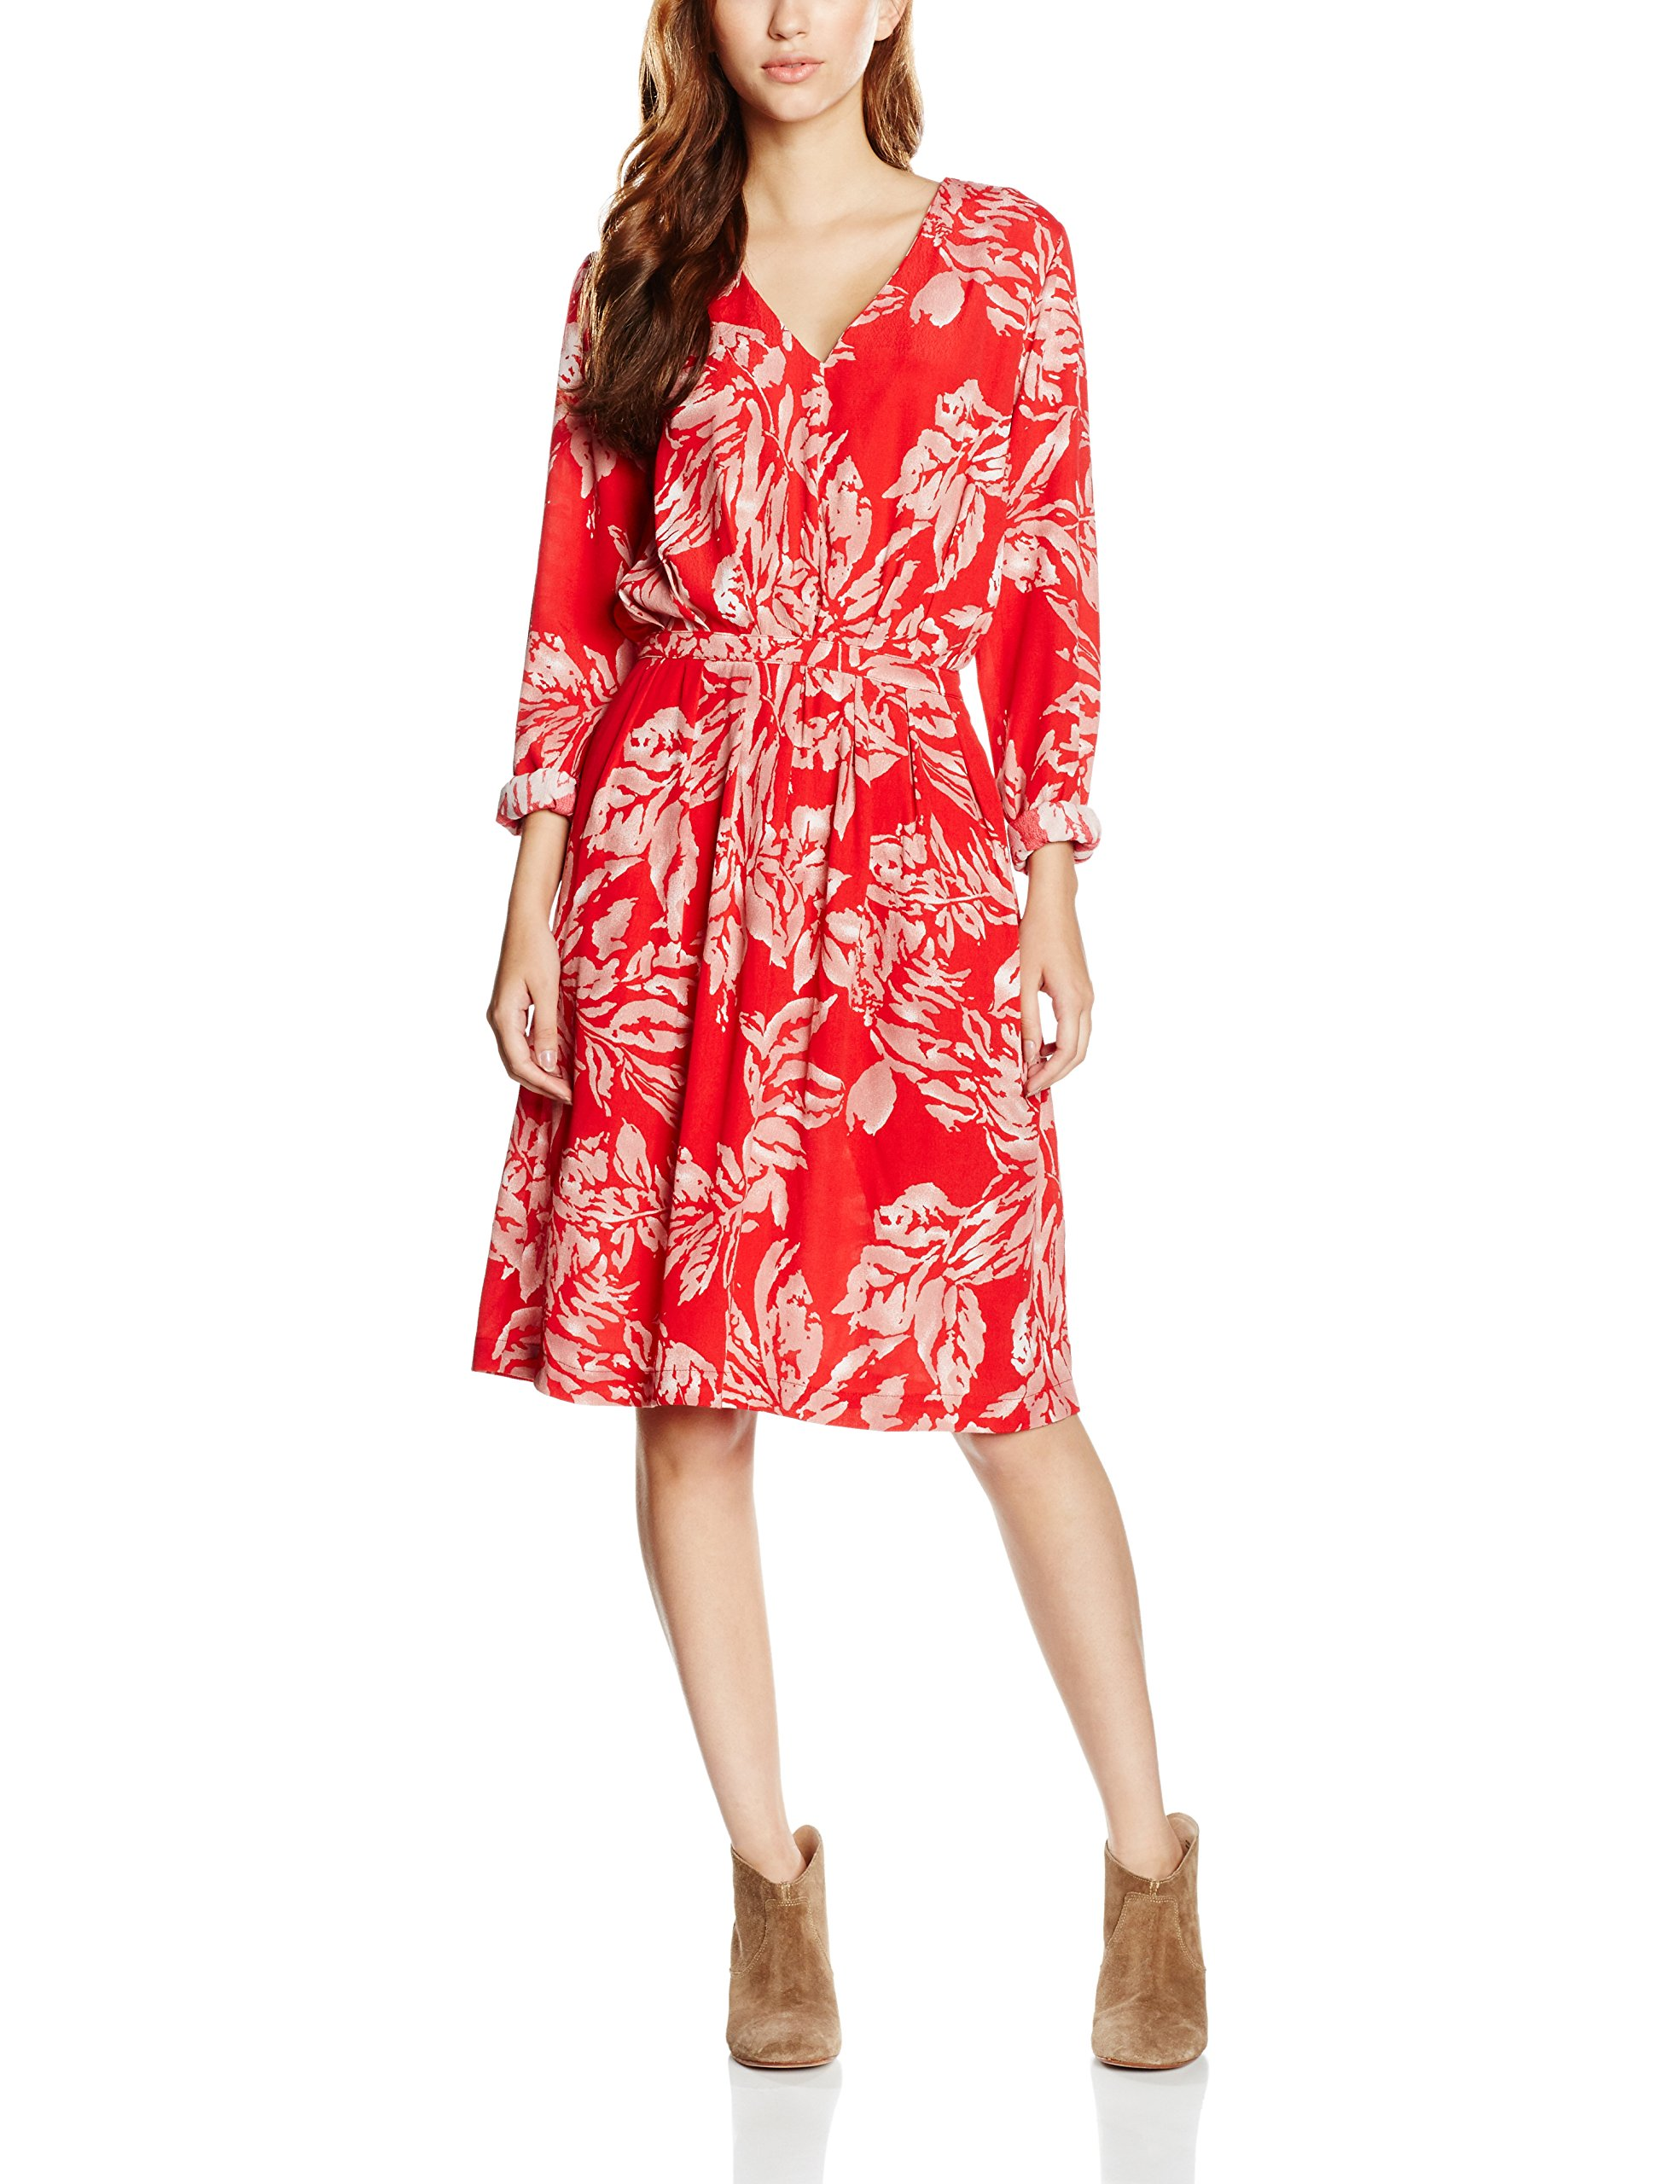 RobeRougetango Leah Fabricant 66Femme Minimum Red 44938taille rBoeWQCdx